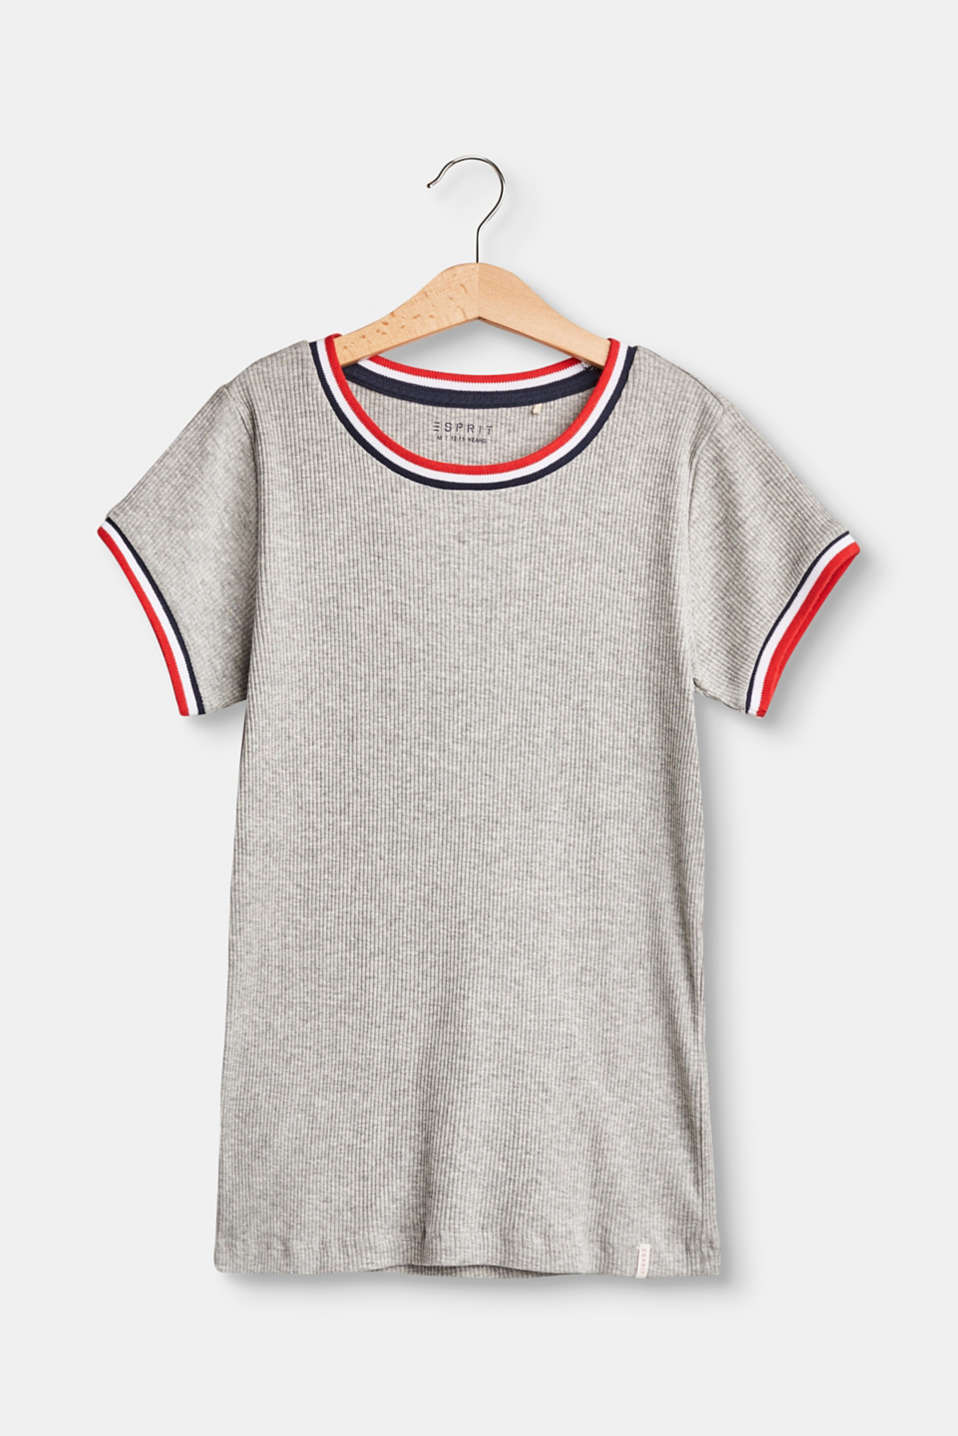 Esprit - Ribbed T-shirt in 100% cotton